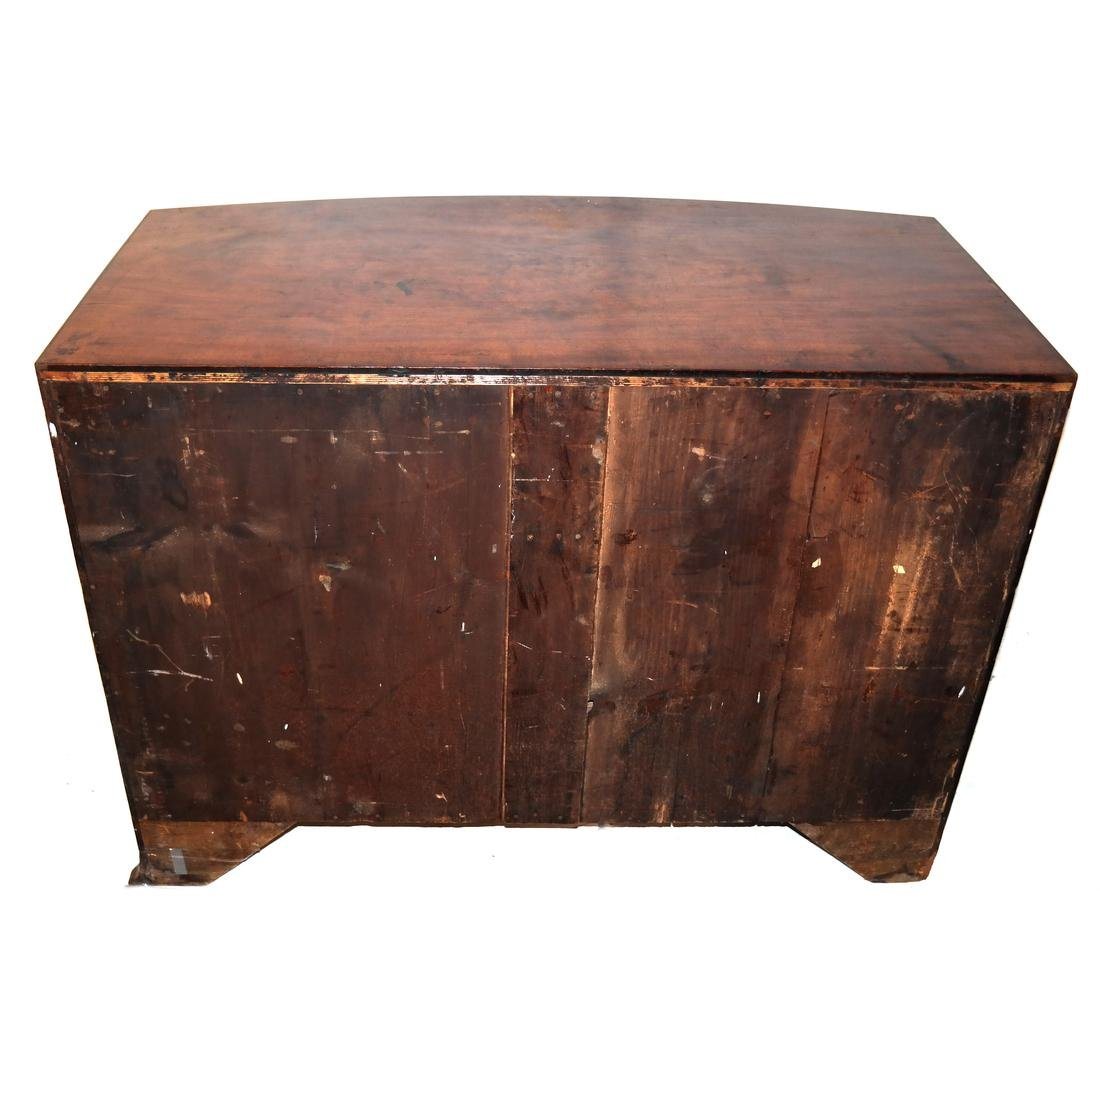 Antique English Bow Front Chest - 8